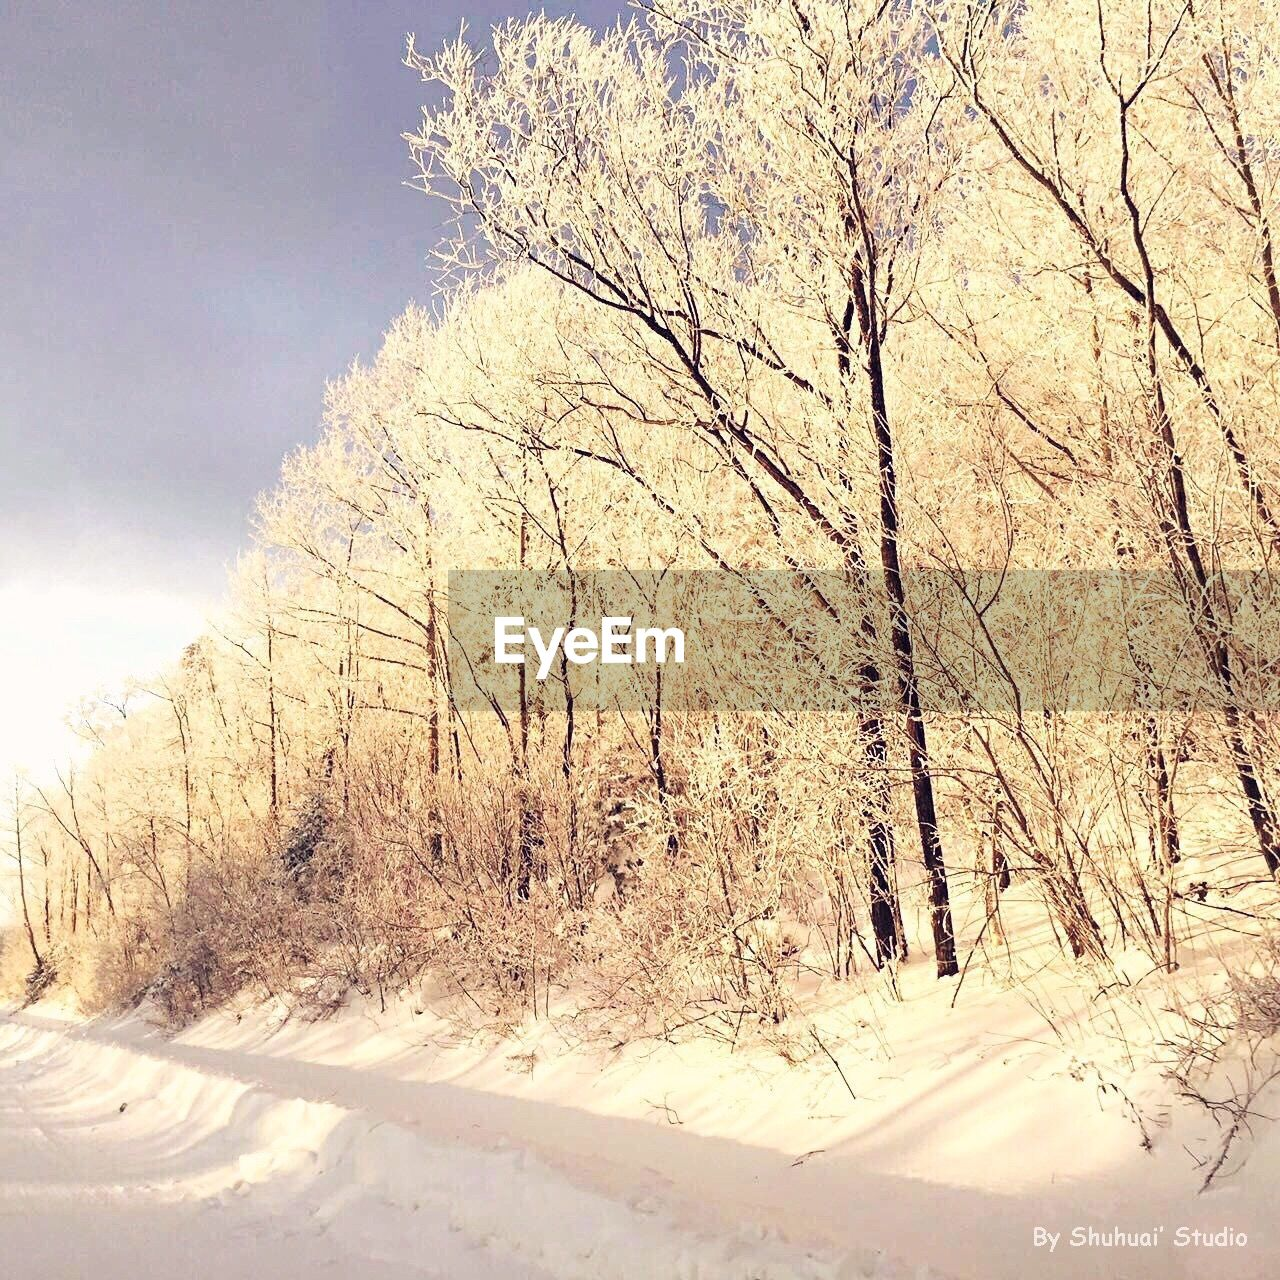 snow, tree, nature, winter, bare tree, cold temperature, beauty in nature, no people, tranquility, day, outdoors, sunlight, branch, sky, landscape